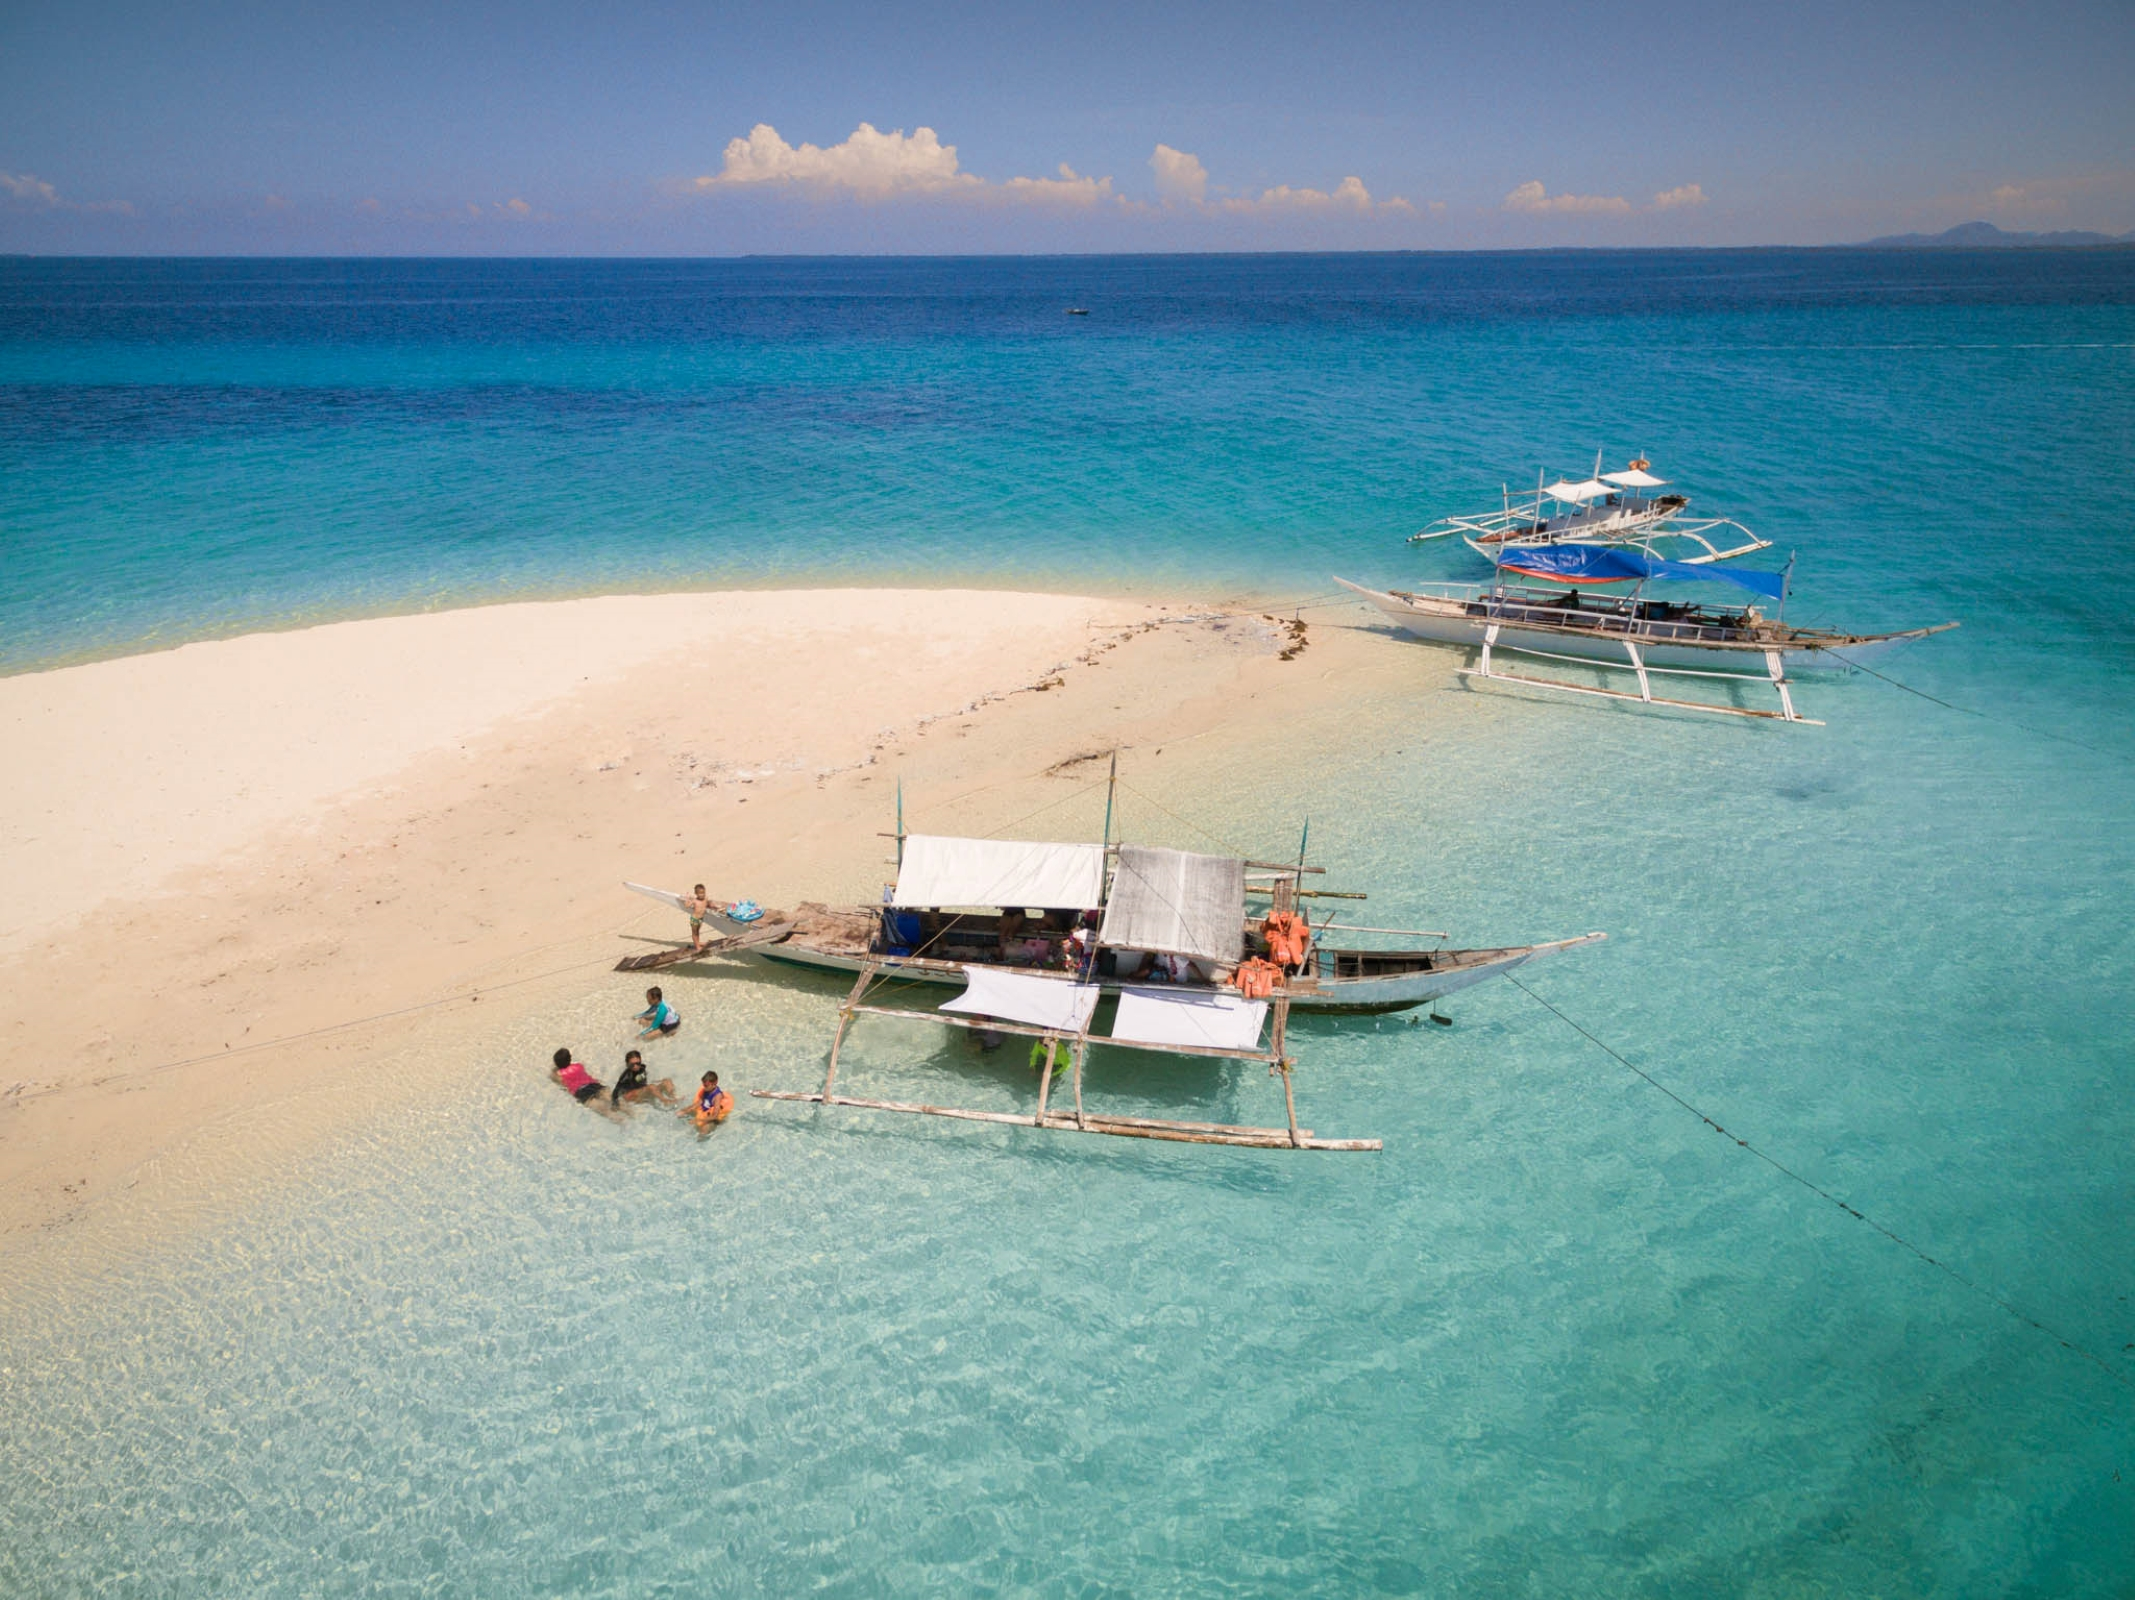 Bacolod Carbin Reef Full-Day Tour | With Guide and Transfers